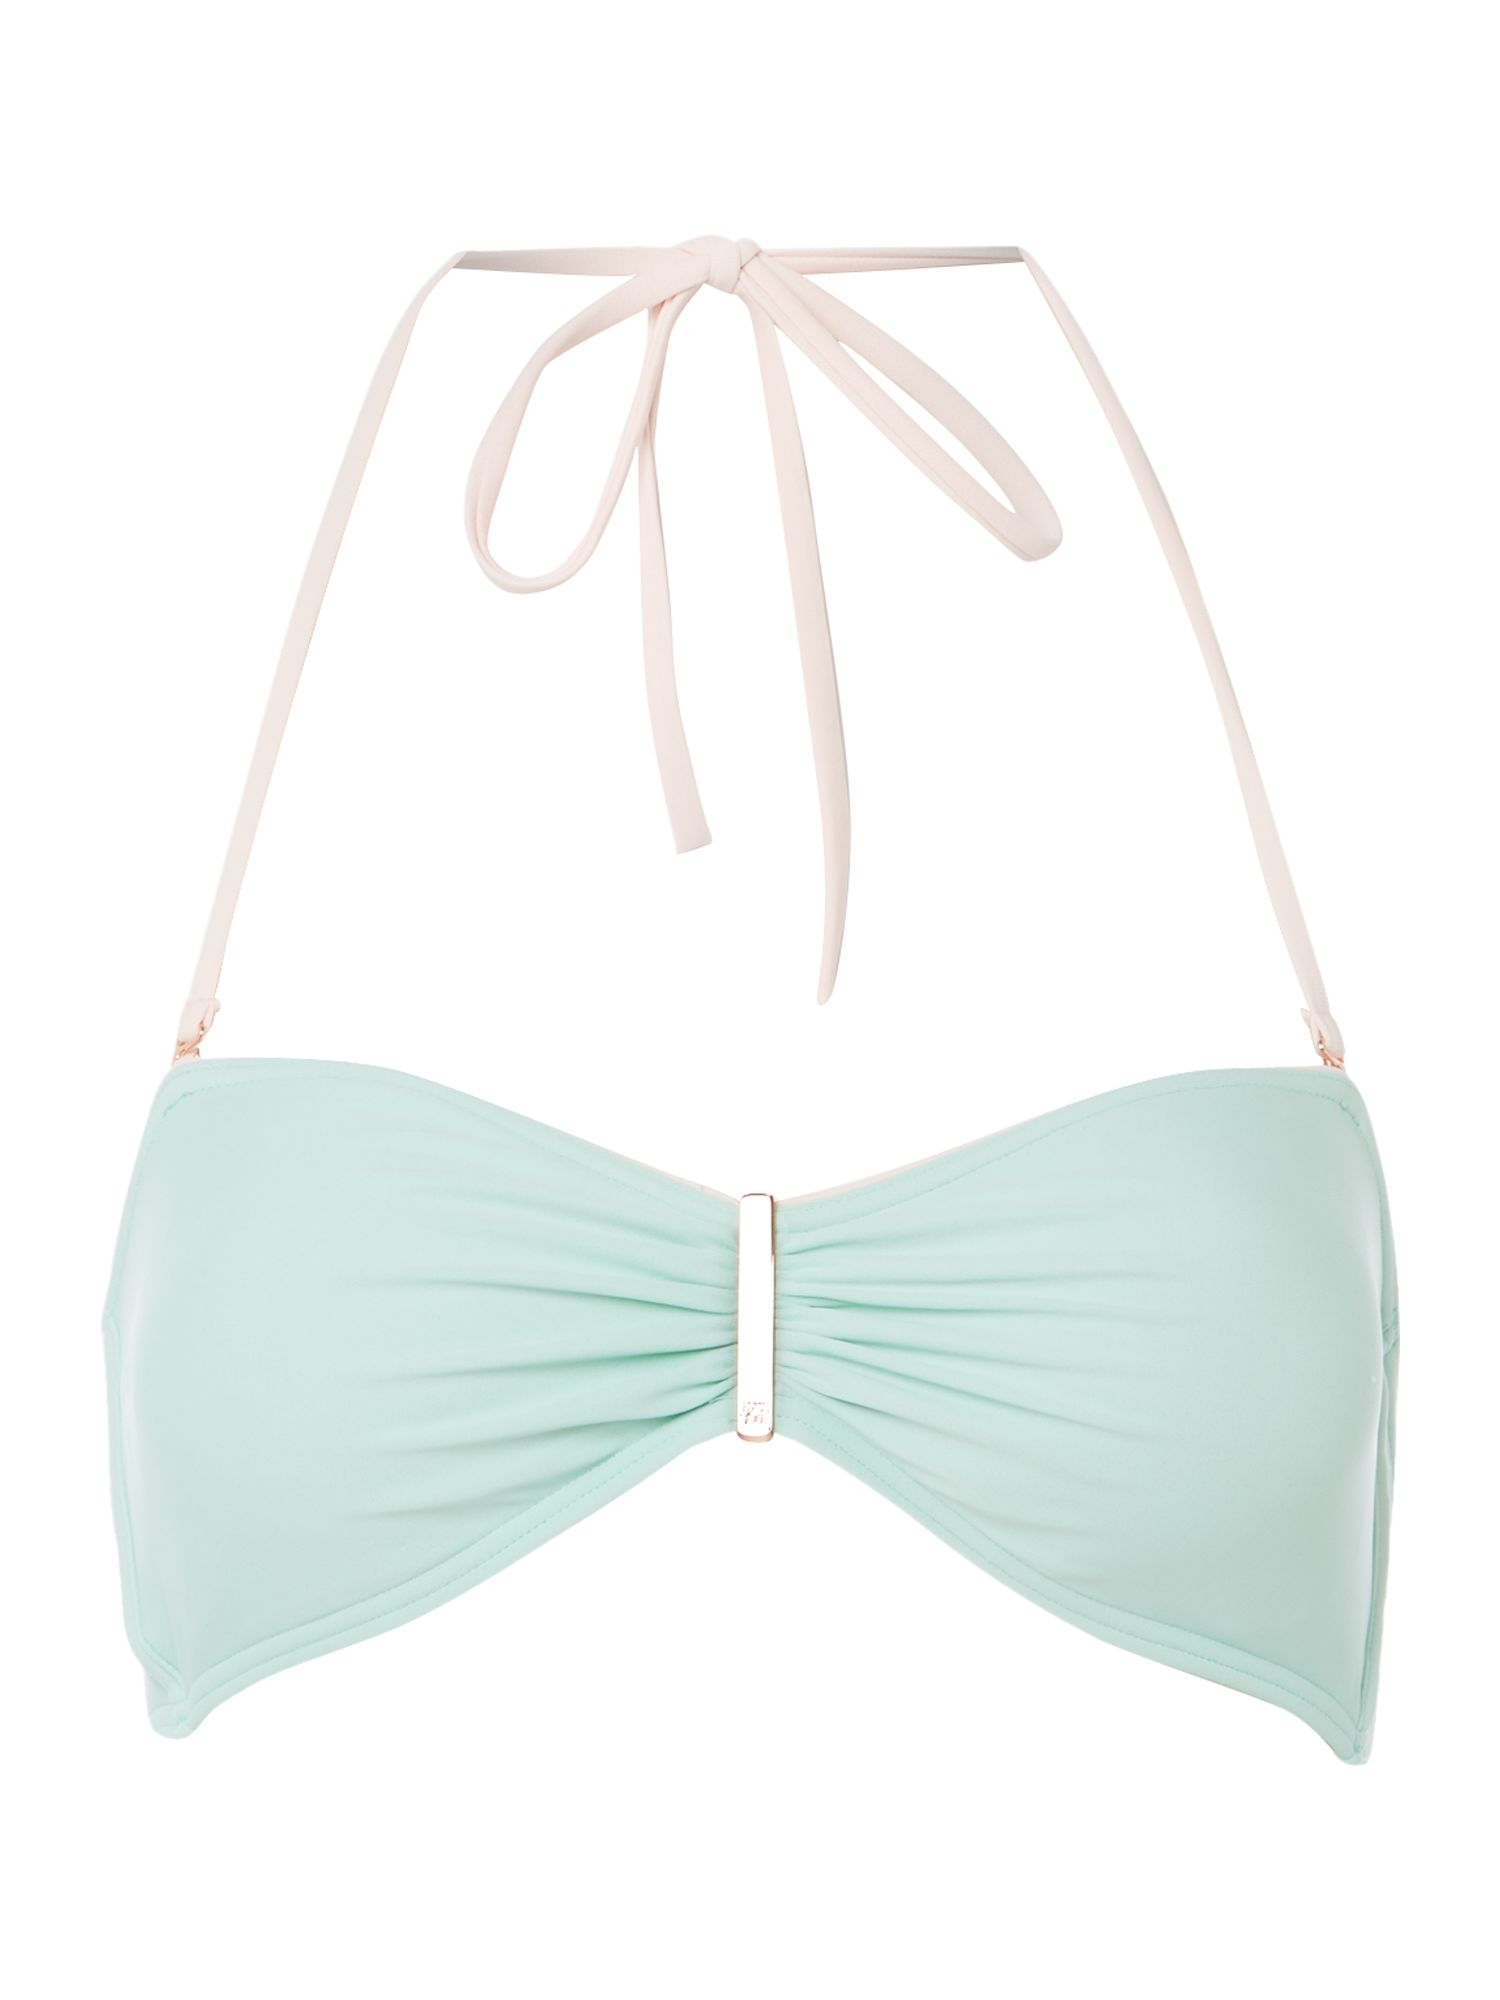 Plain bar bikini top